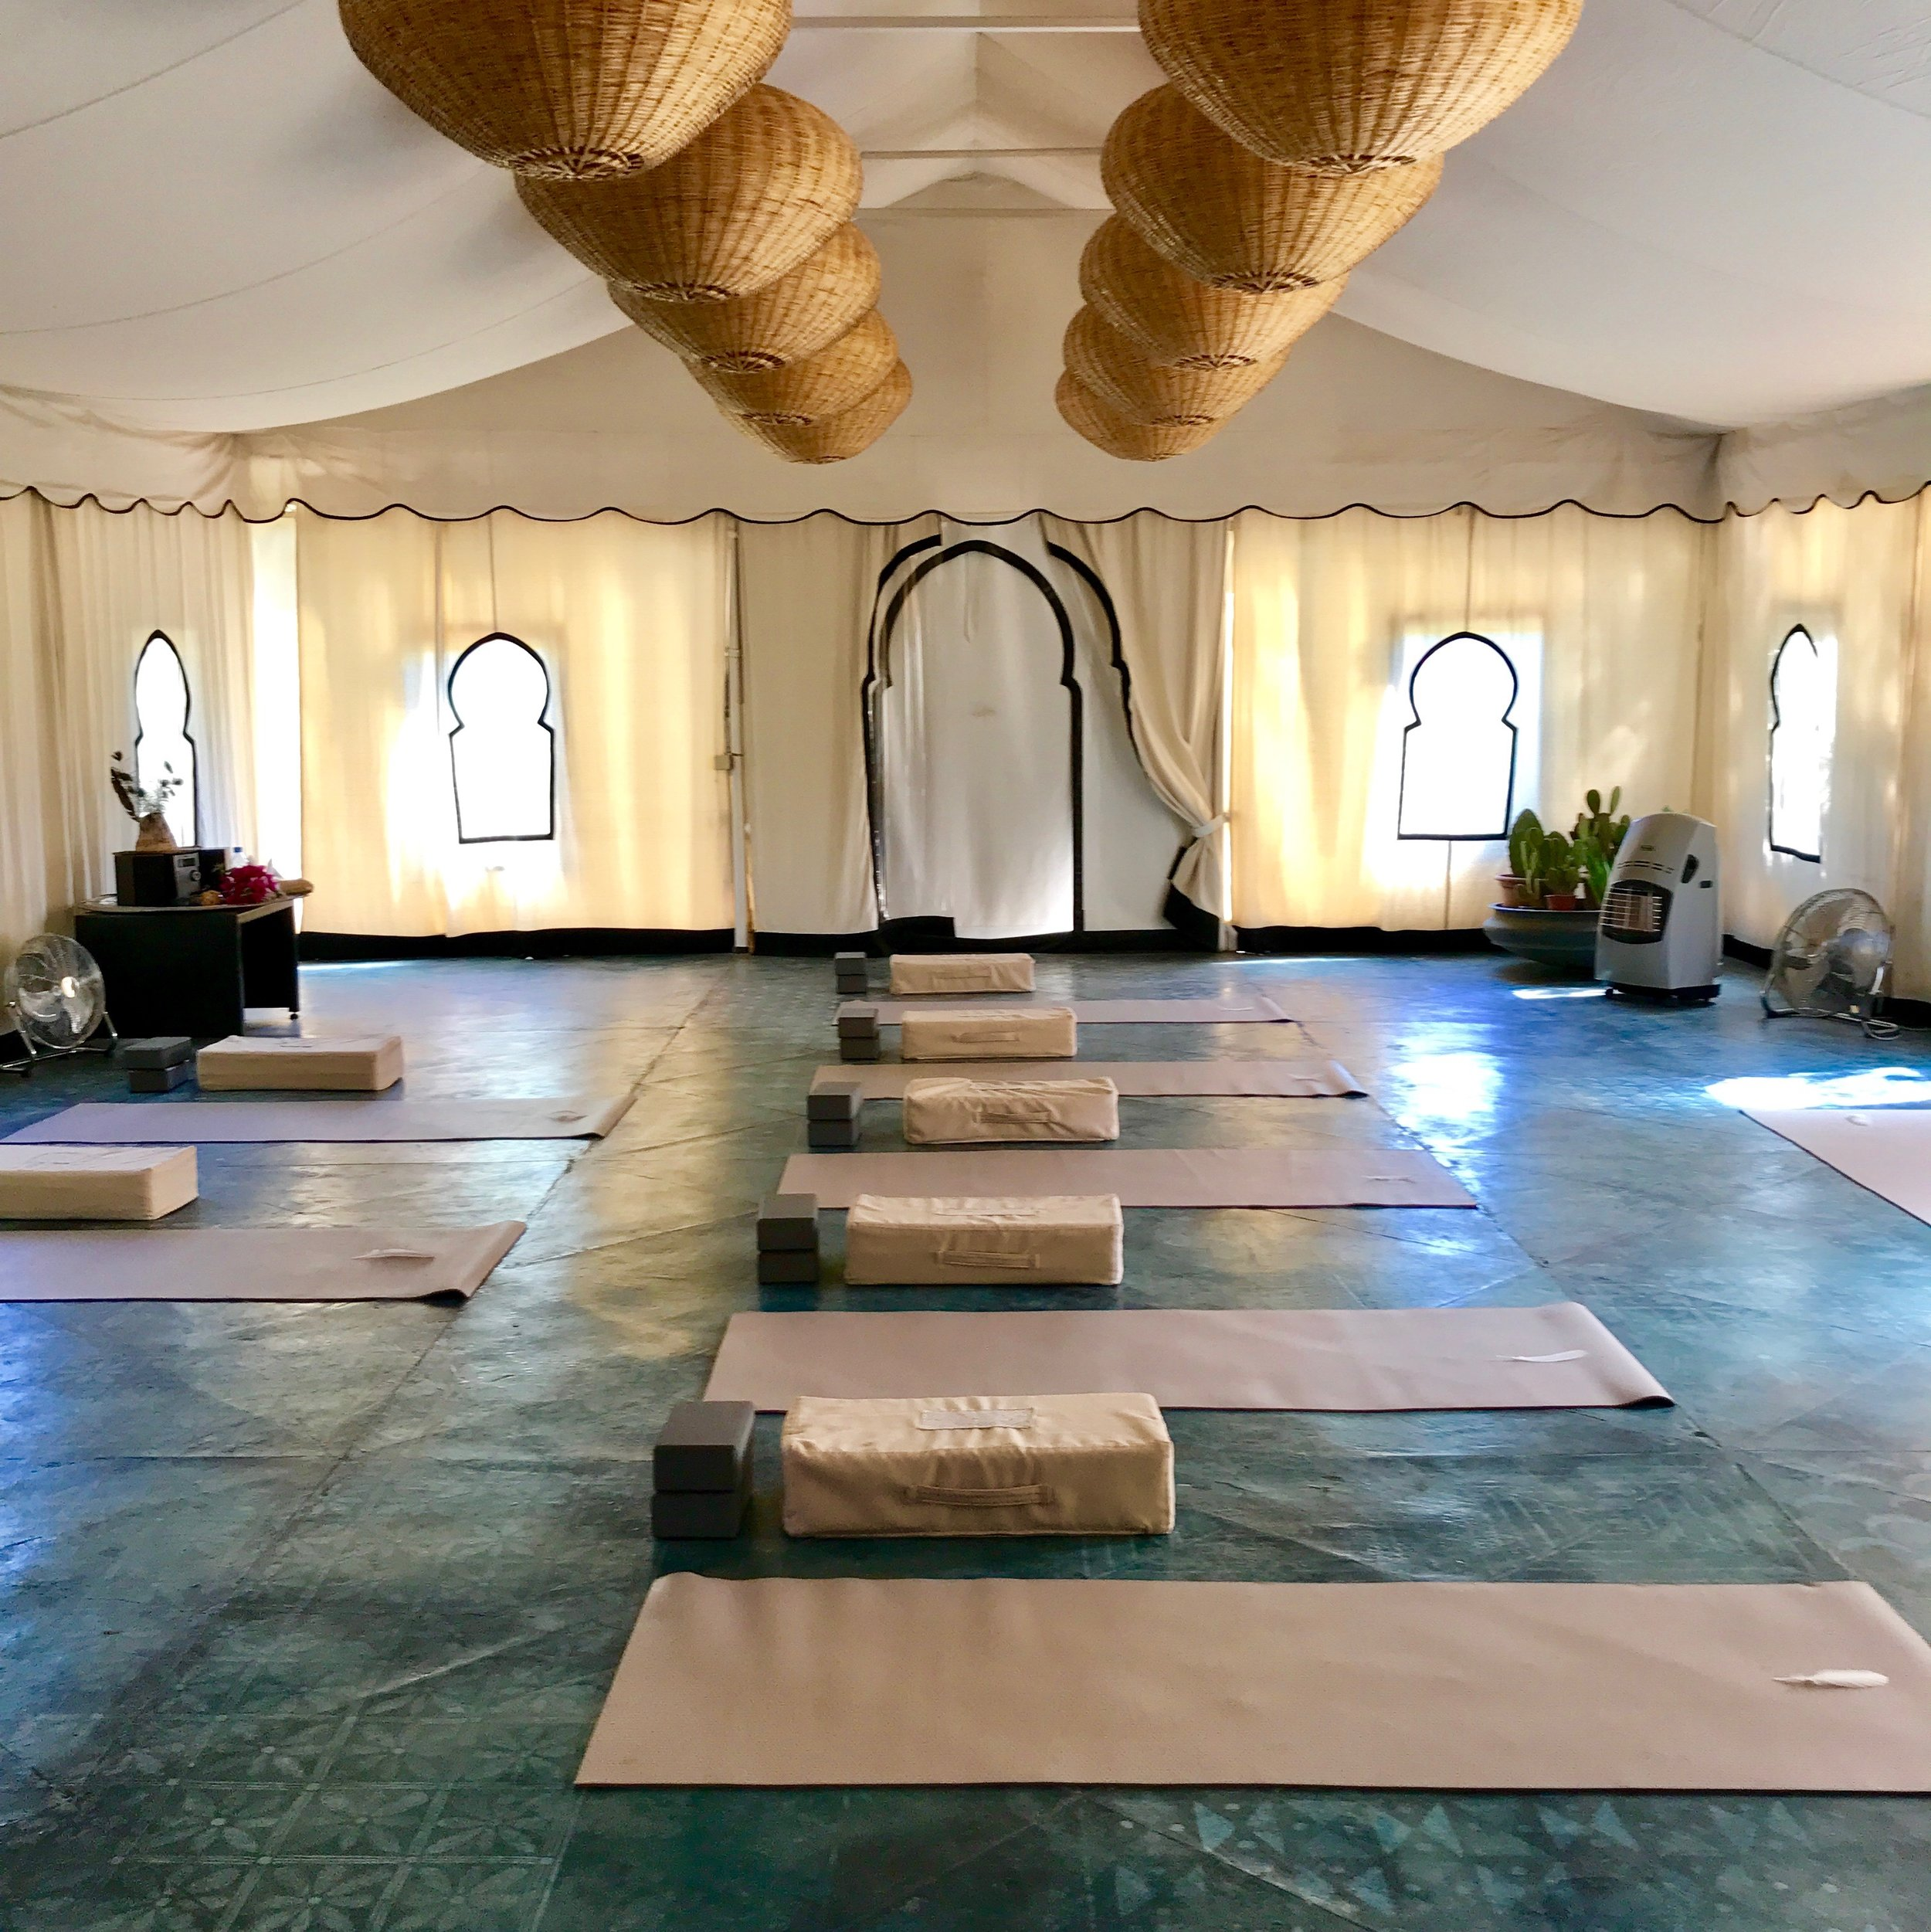 The Yoga Tent at Peacock Pavillions